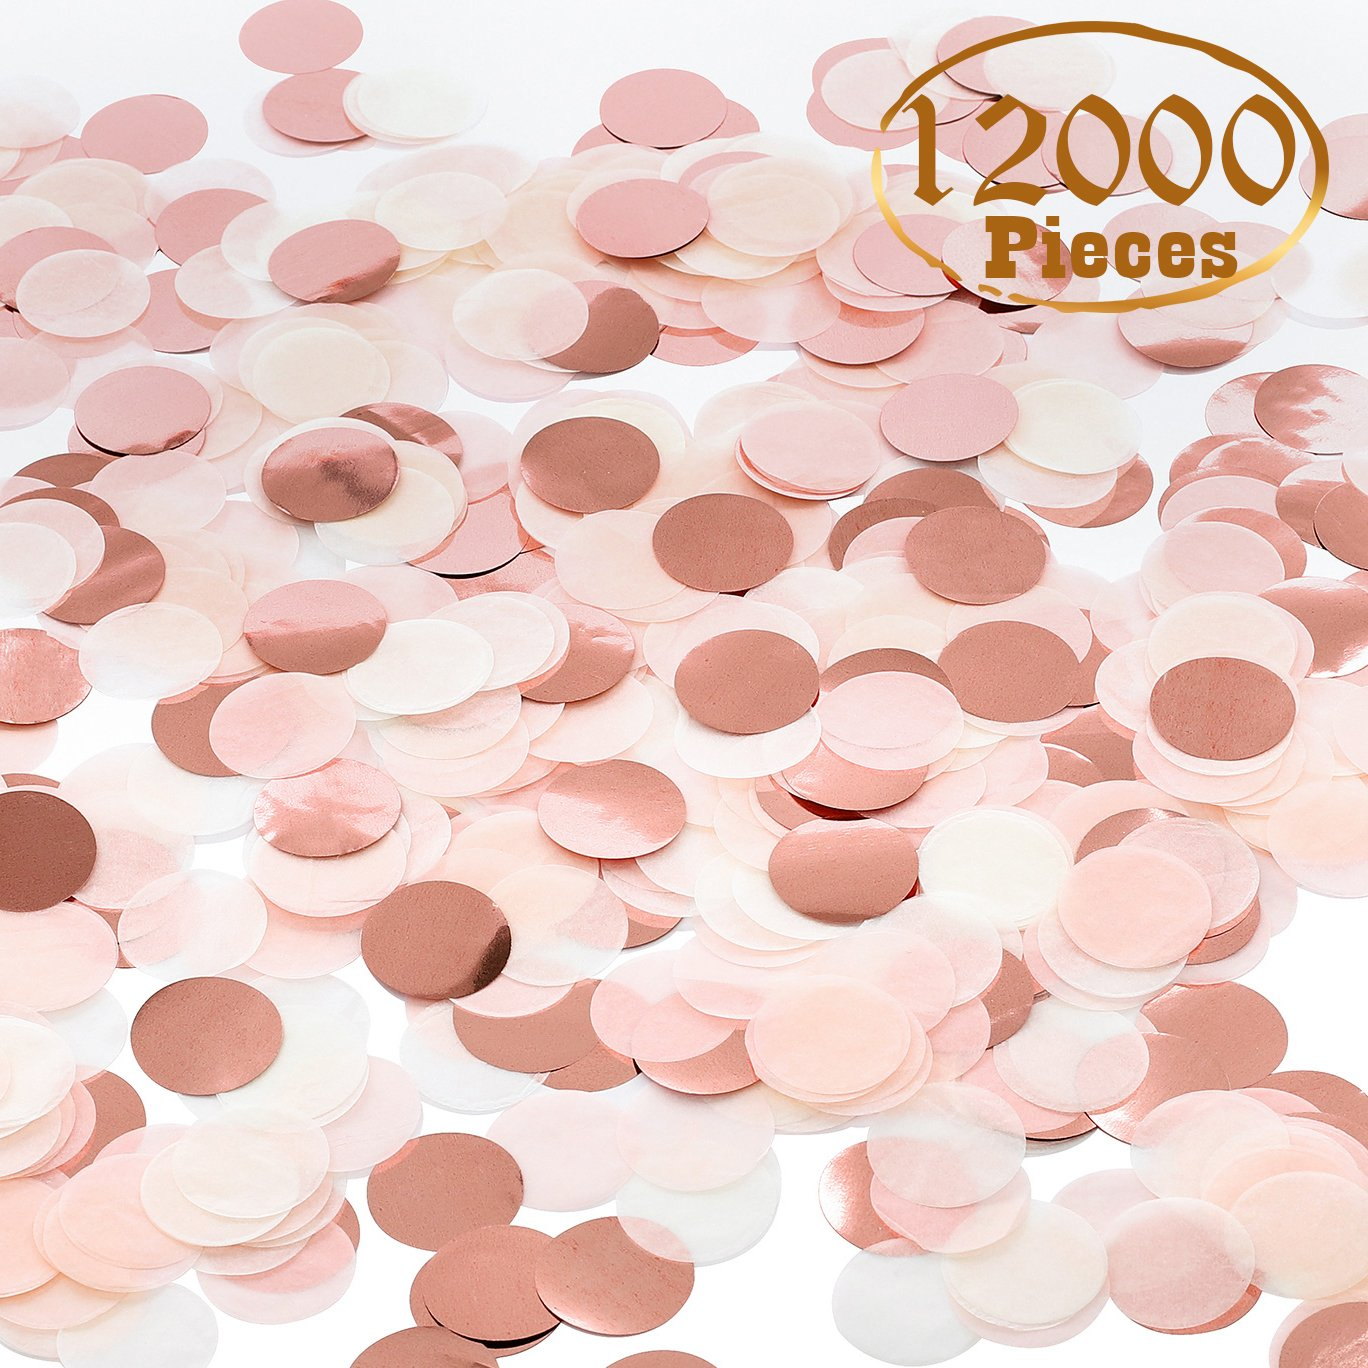 Whaline 12000 Pieces Paper Confetti Circles Tissue Party Table Confetti for Wedding, Holiday, Anniversary, Birthday, Mixed Colors, 1 Inch (120 grams) by Whaline